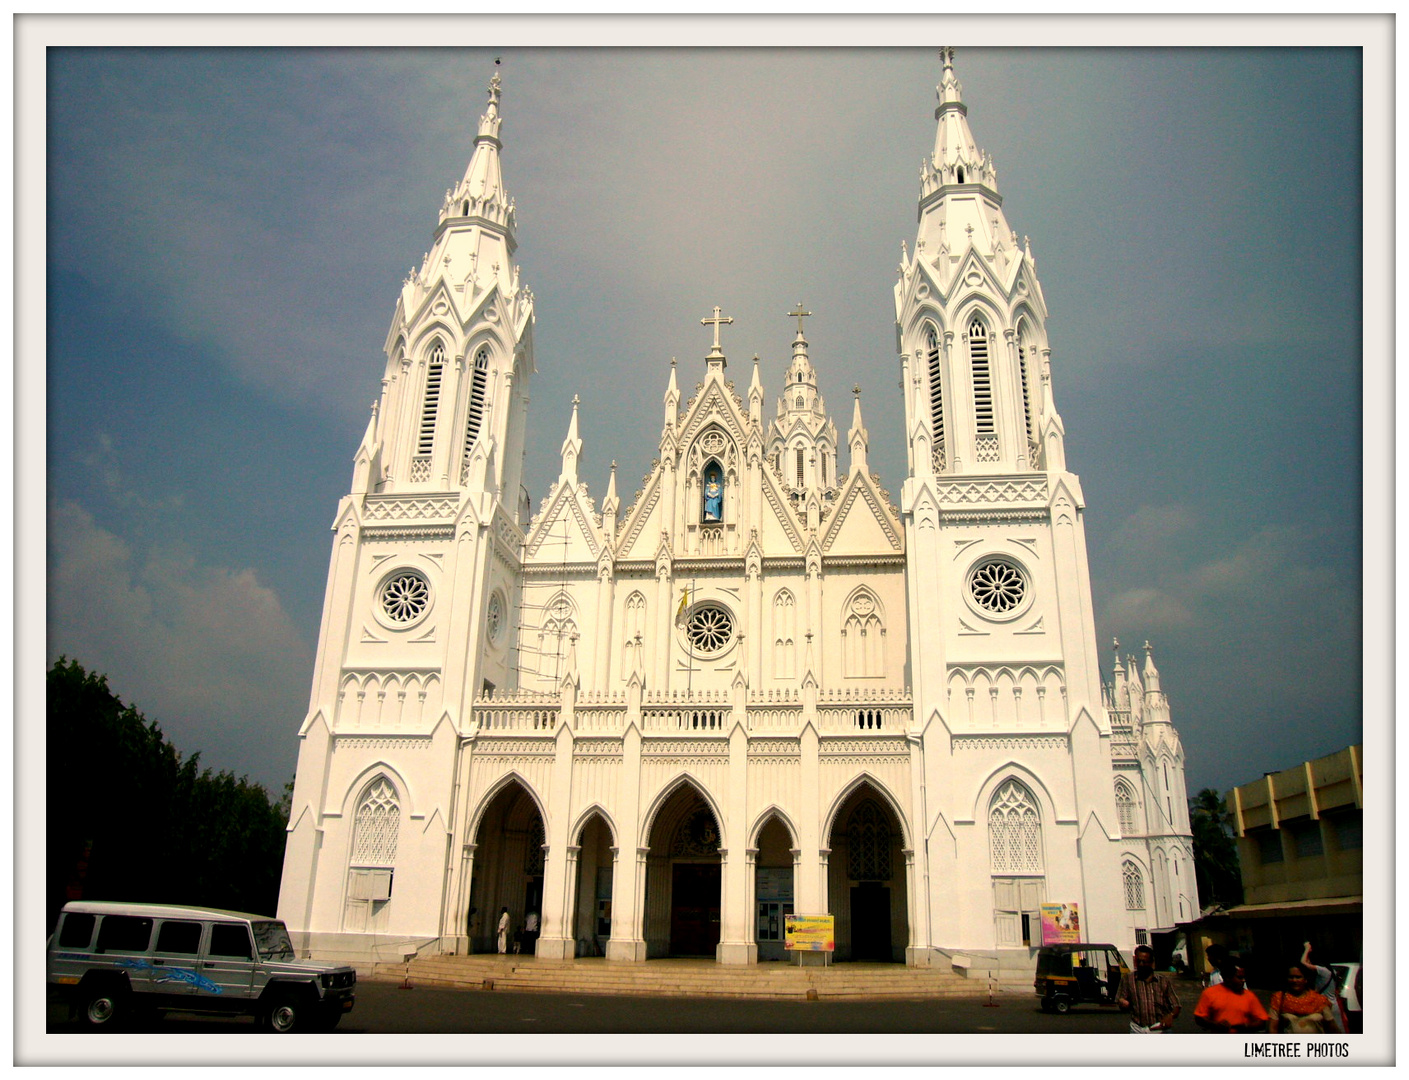 The Lourdes Cathedral in Thrissur